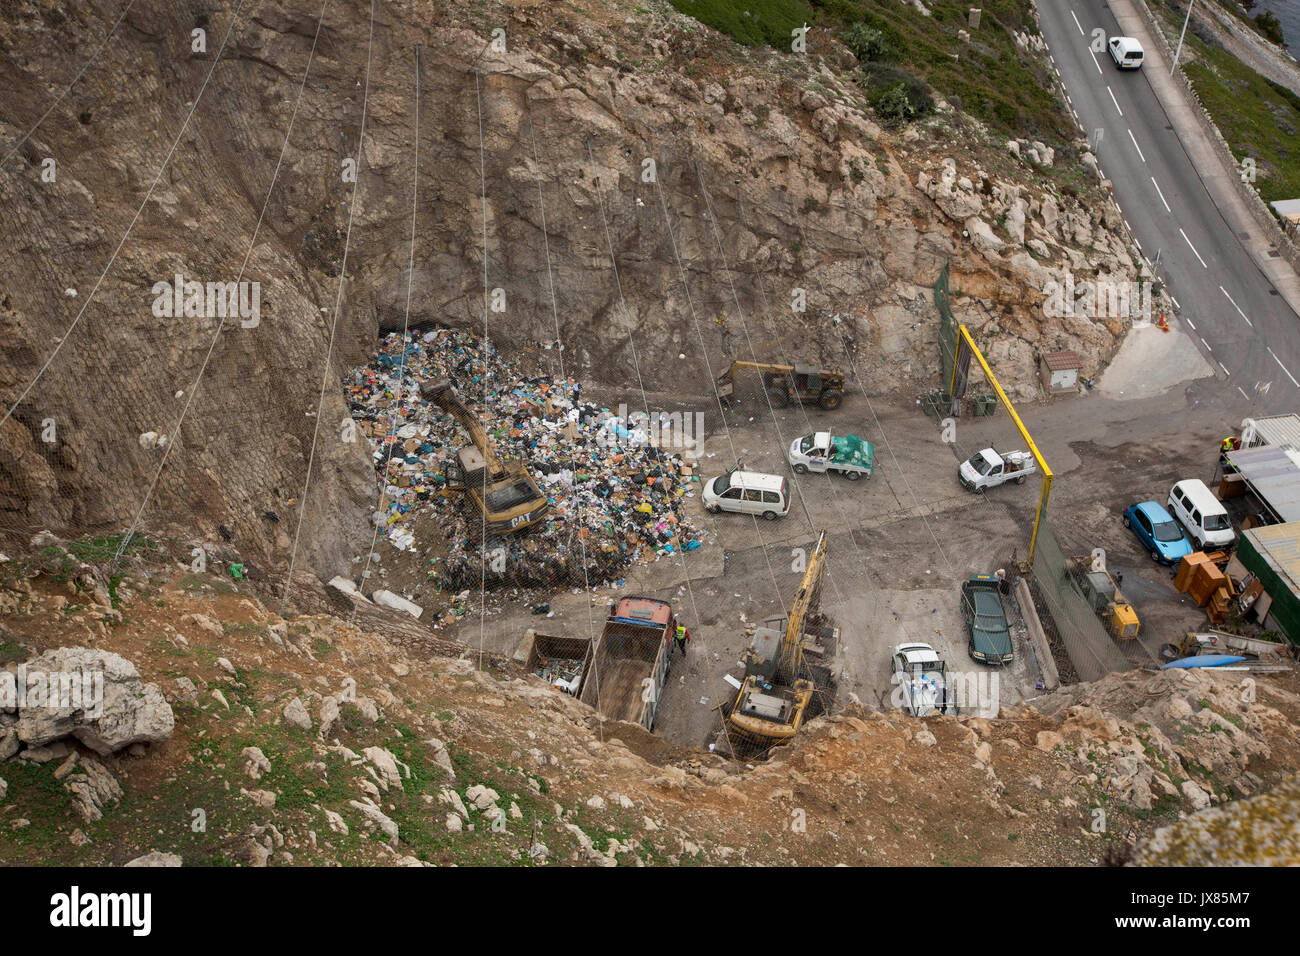 Barbary macaques scavenge for food in a busy landfill site in Gibraltar. - Stock Image